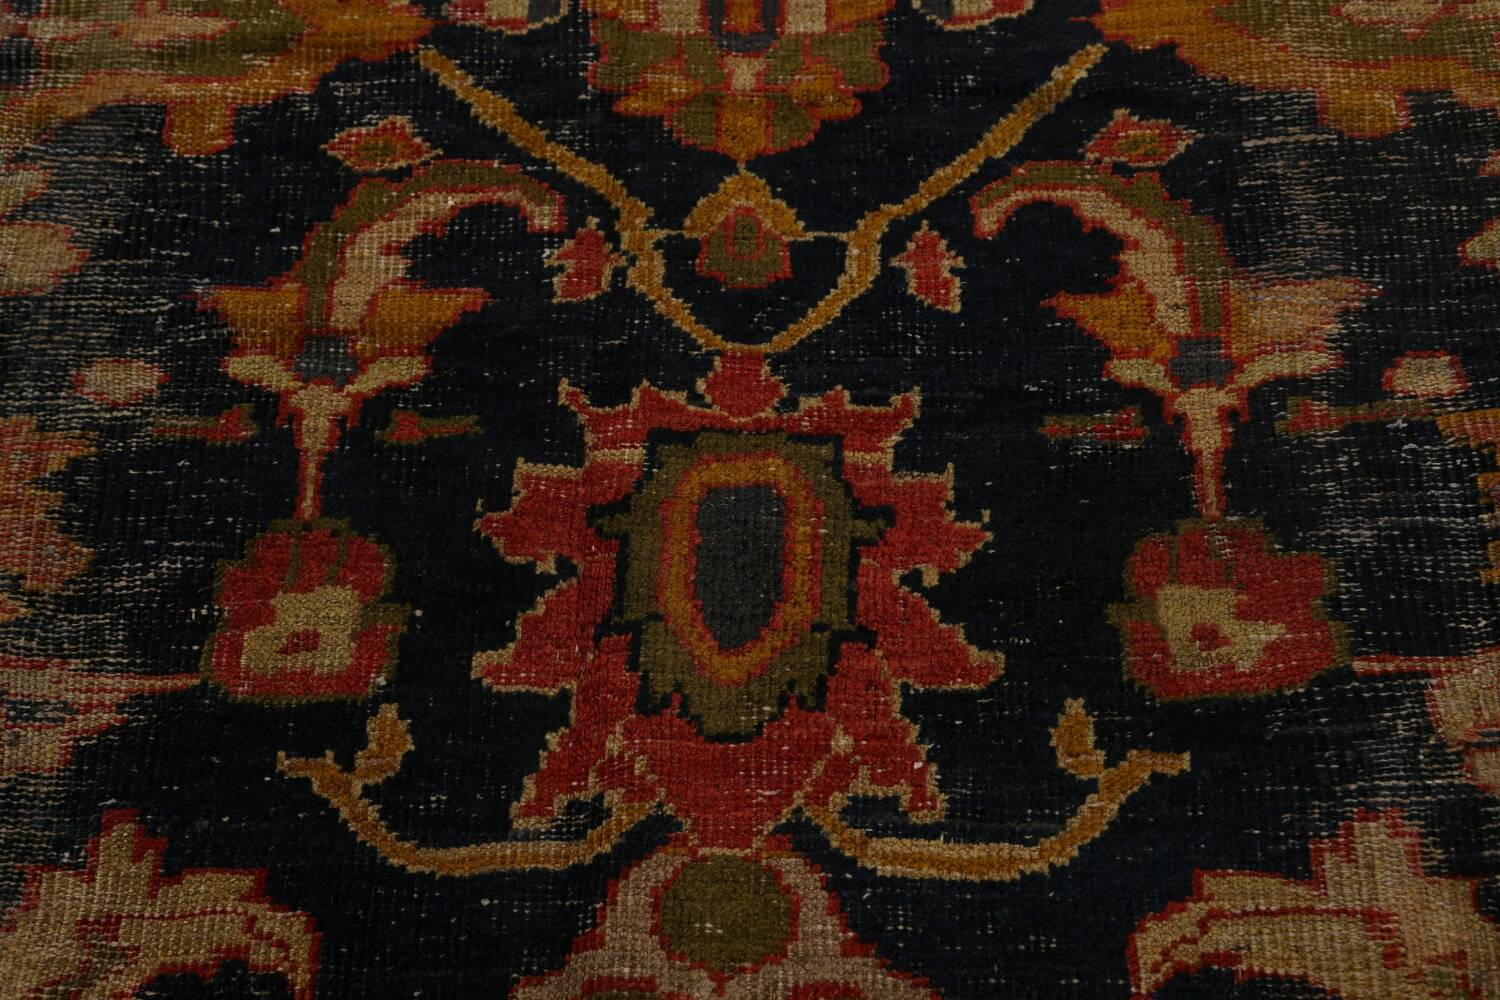 Antique Vegetable Dye Sultanabad Persian Area Rug 11x14 Large image 11